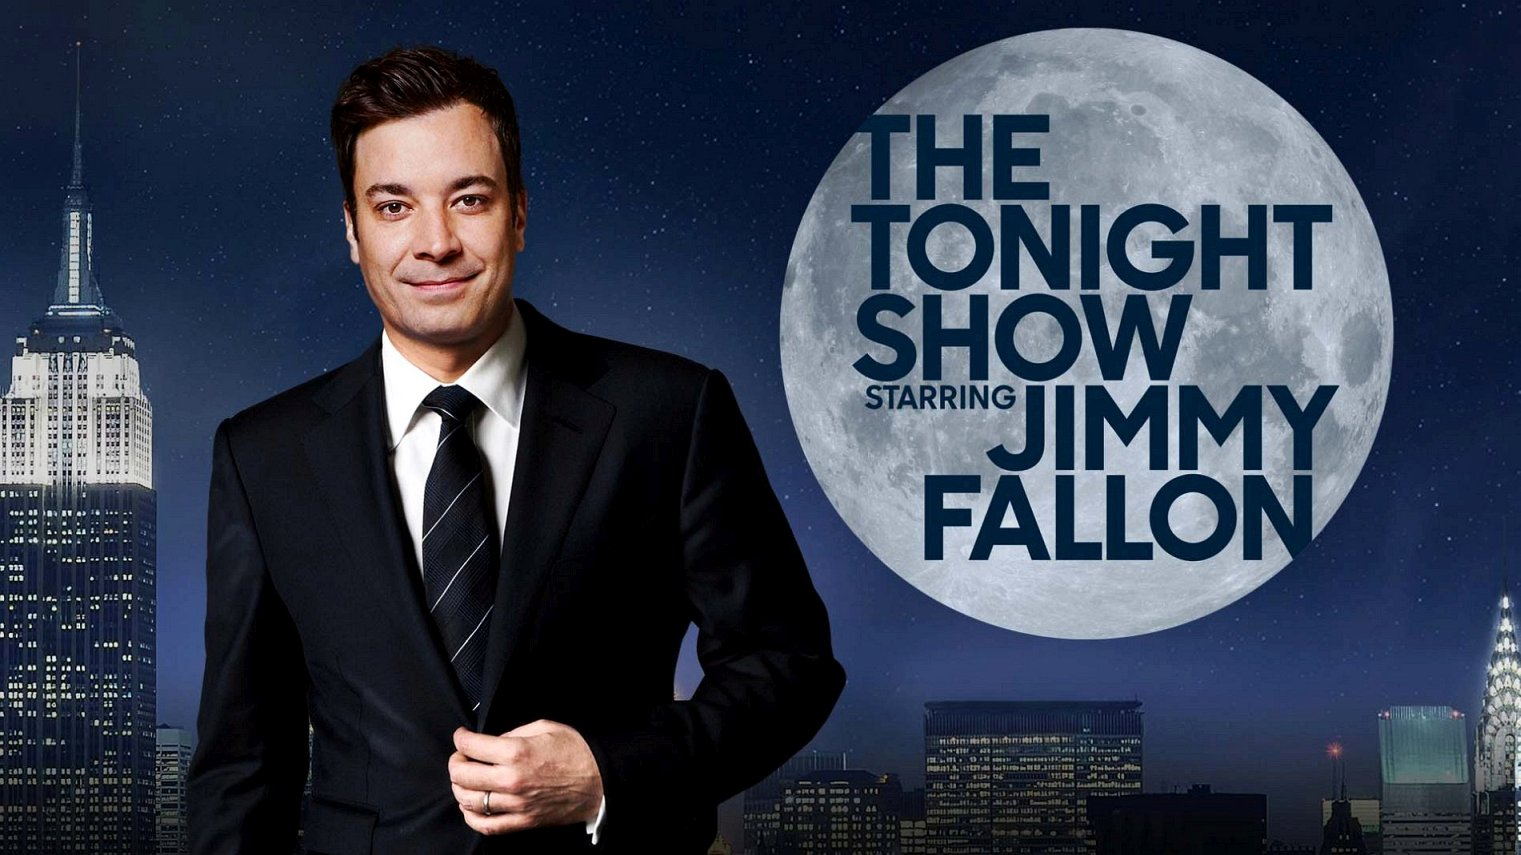 what time is The Tonight Show Starring Jimmy Fallon on